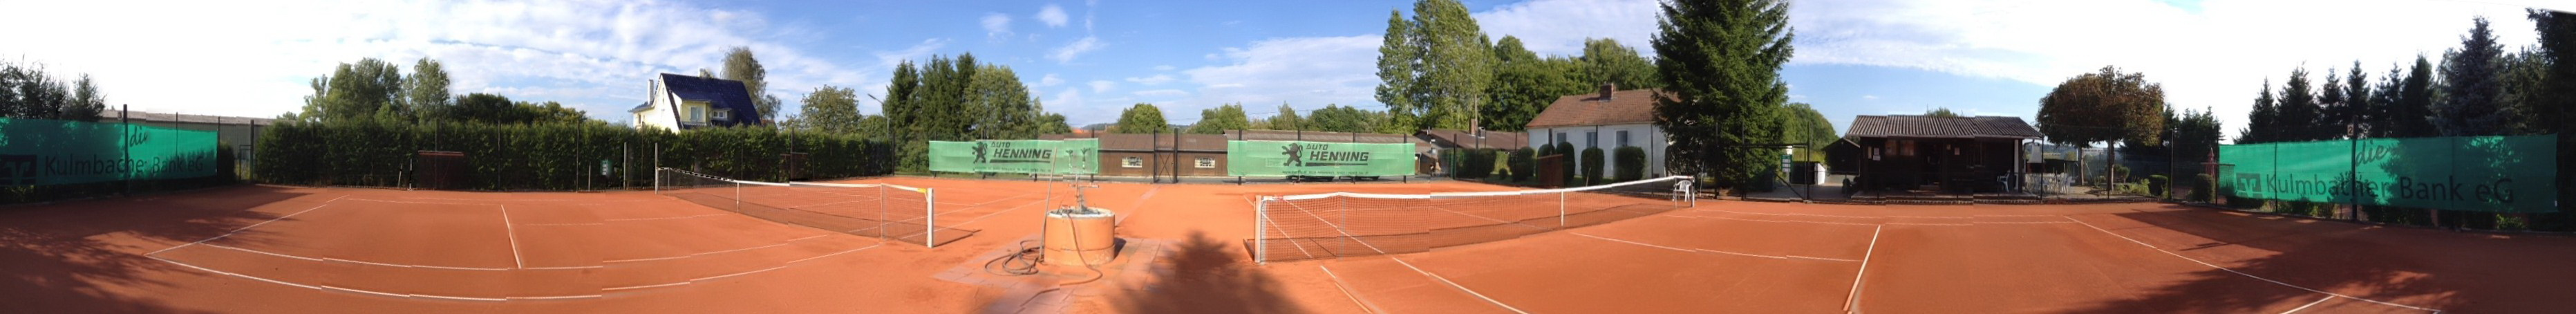 tennisplaetze panorama